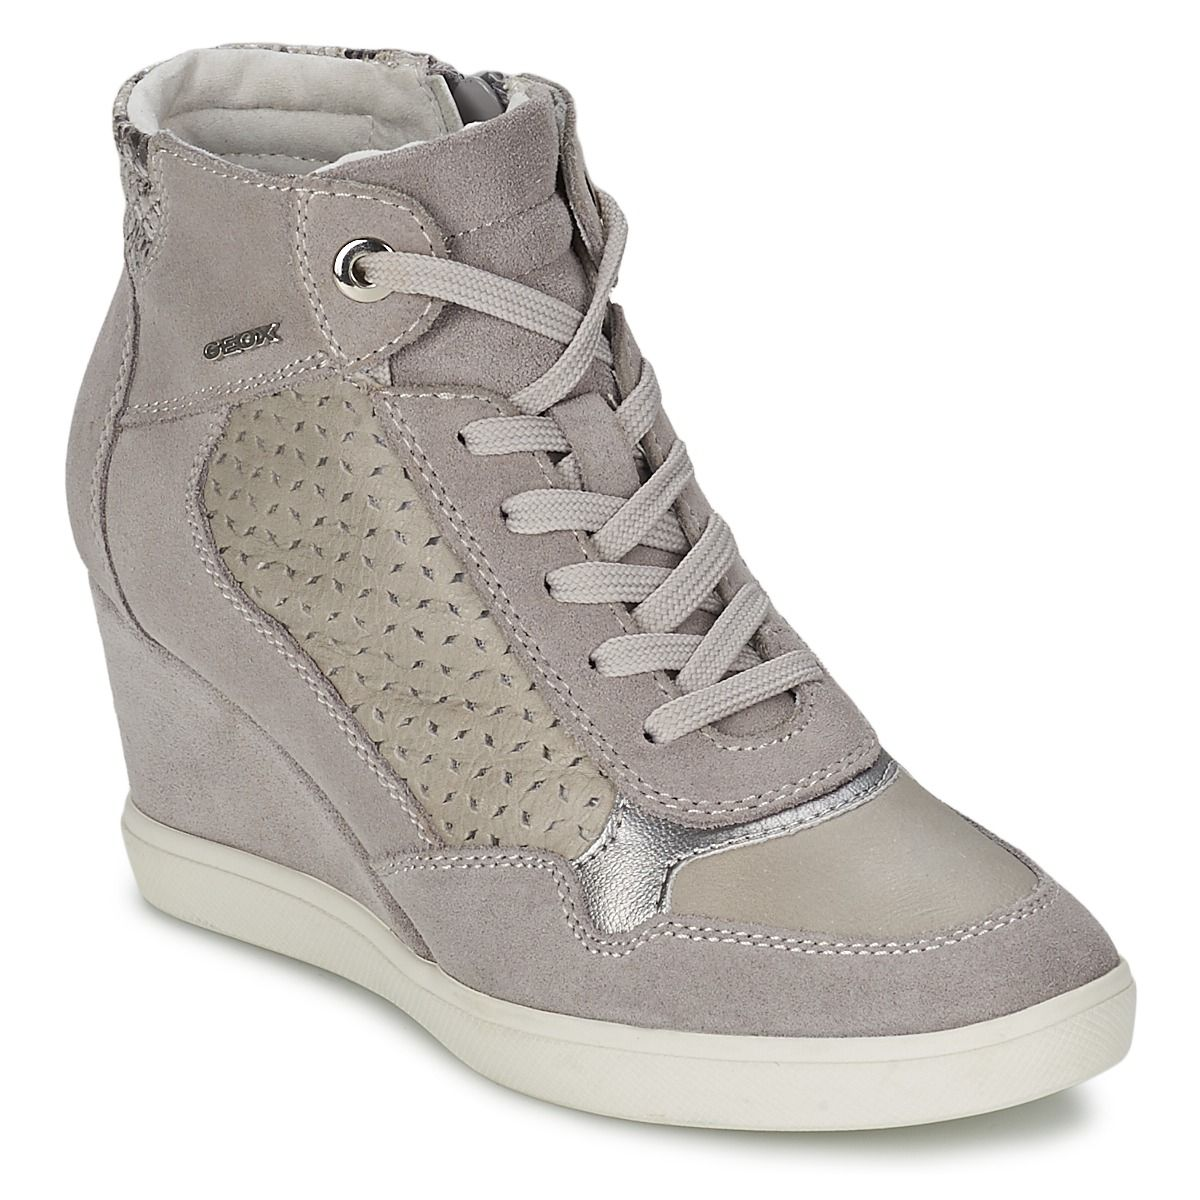 Favorite Eleni Girls Chaussure A Pinterest Geox Grey Things d6qIIw